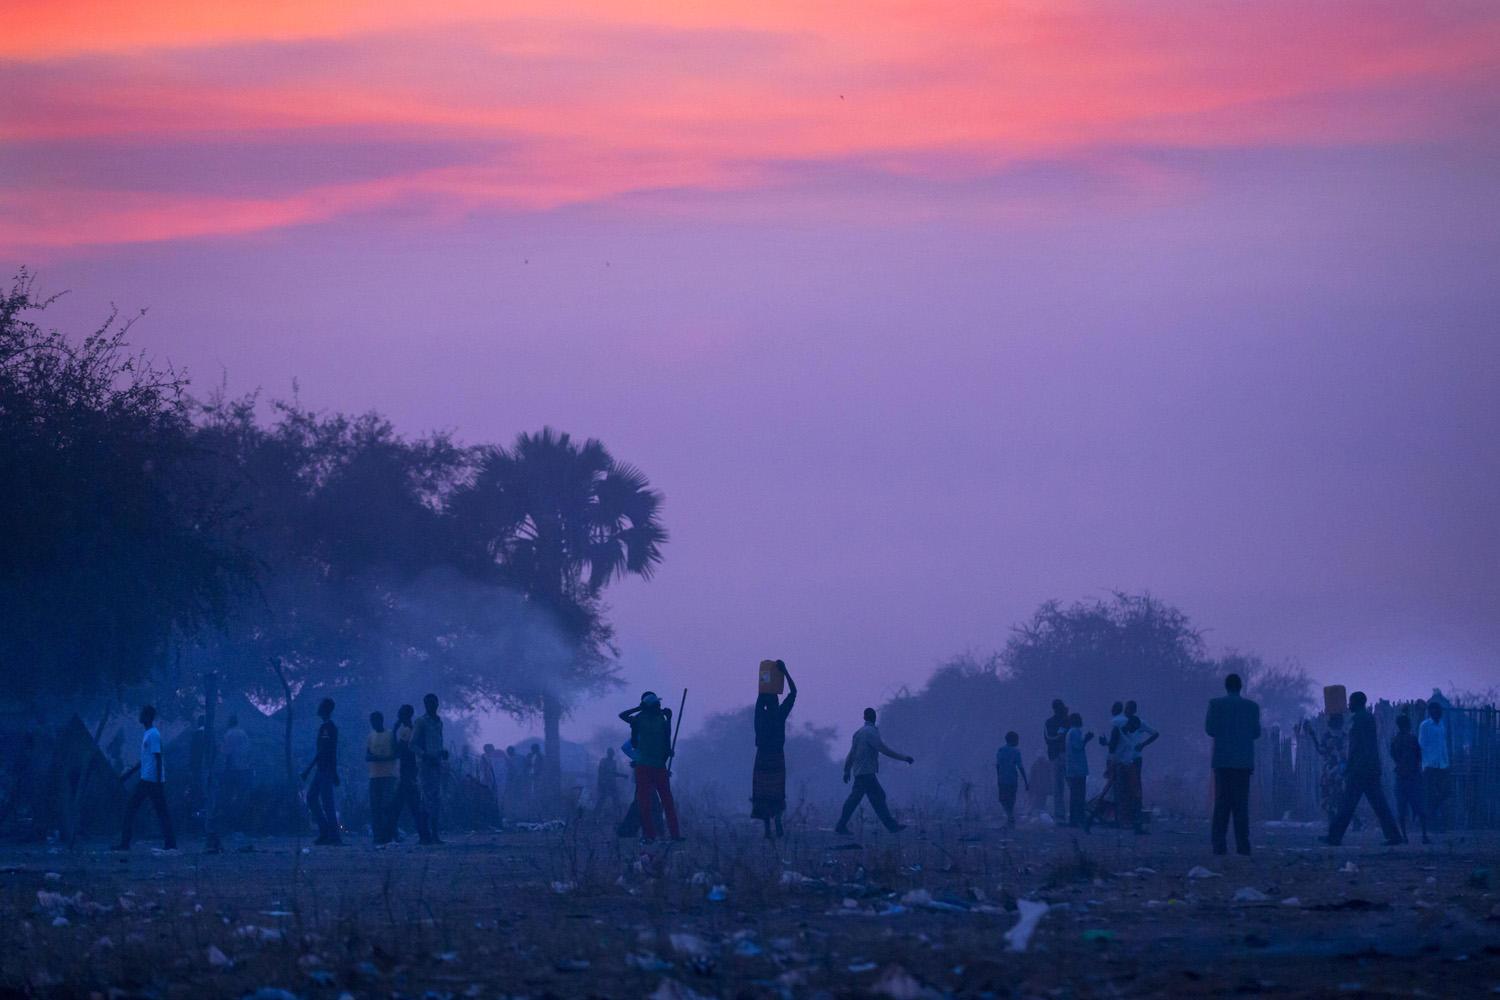 Jan. 1, 2014. Displaced people who fled the recent fighting between government and rebel forces in Bor, prepare to sleep in the open at night in the town of Awerial, South Sudan.